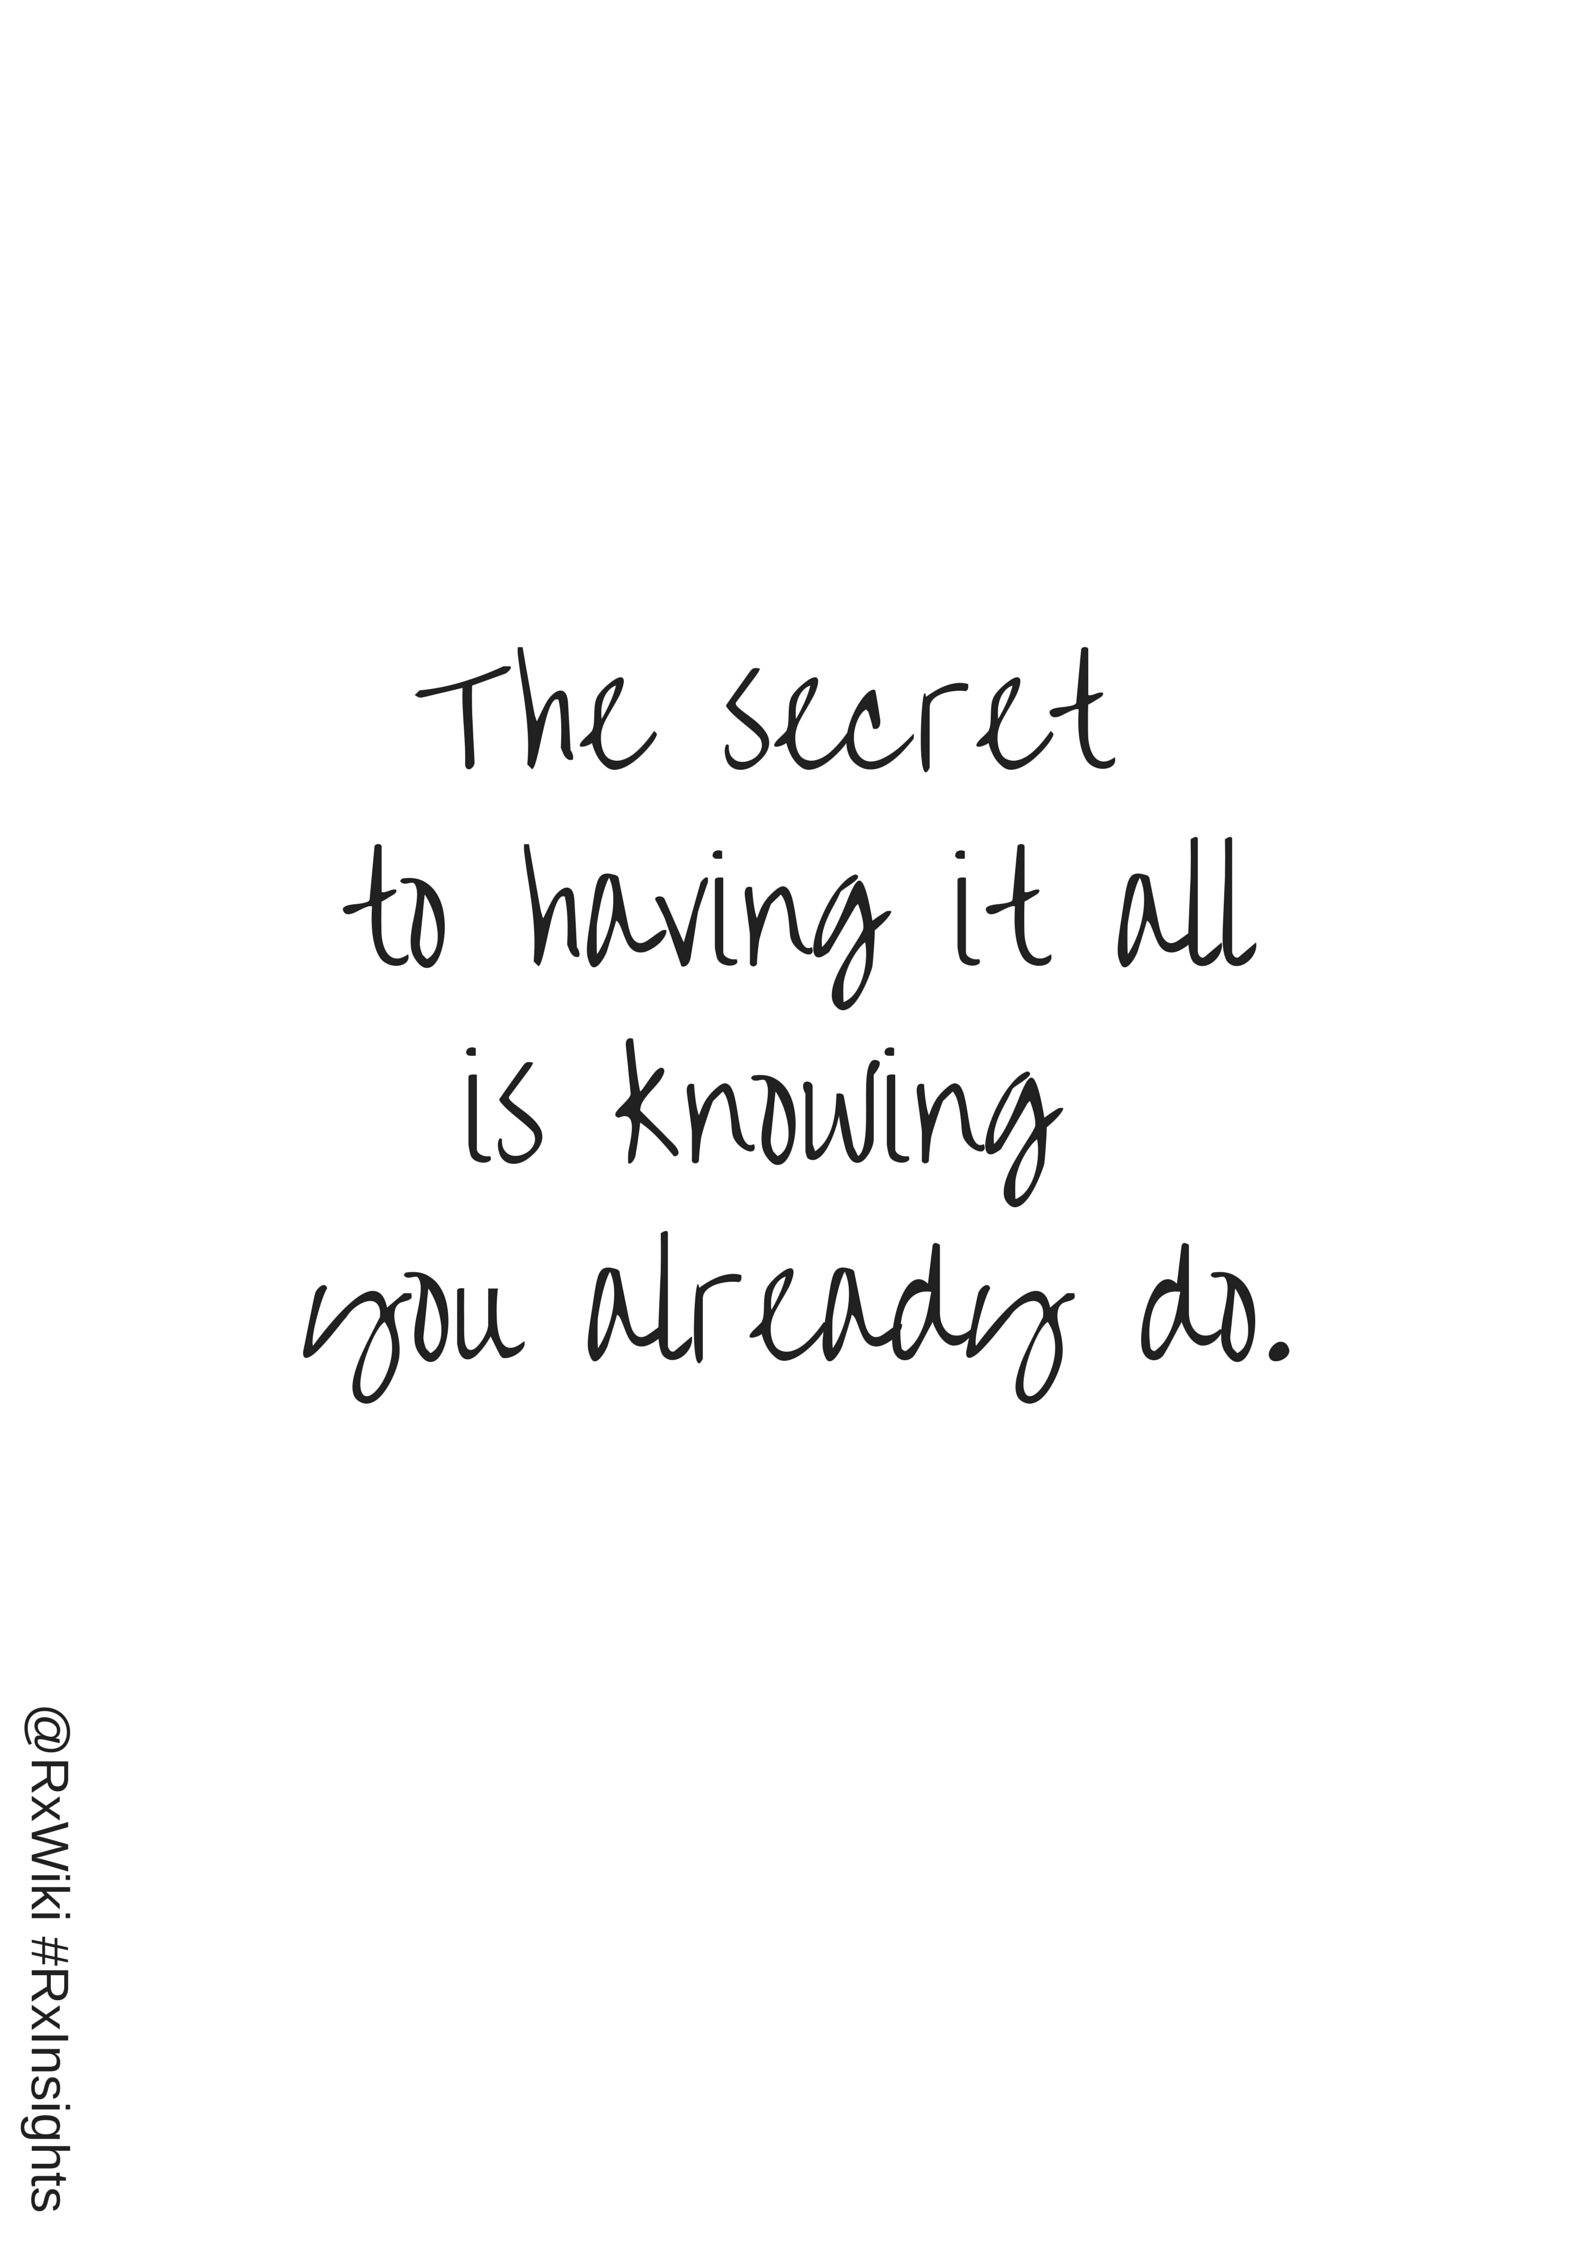 The secret to having it all is knowing you already do #